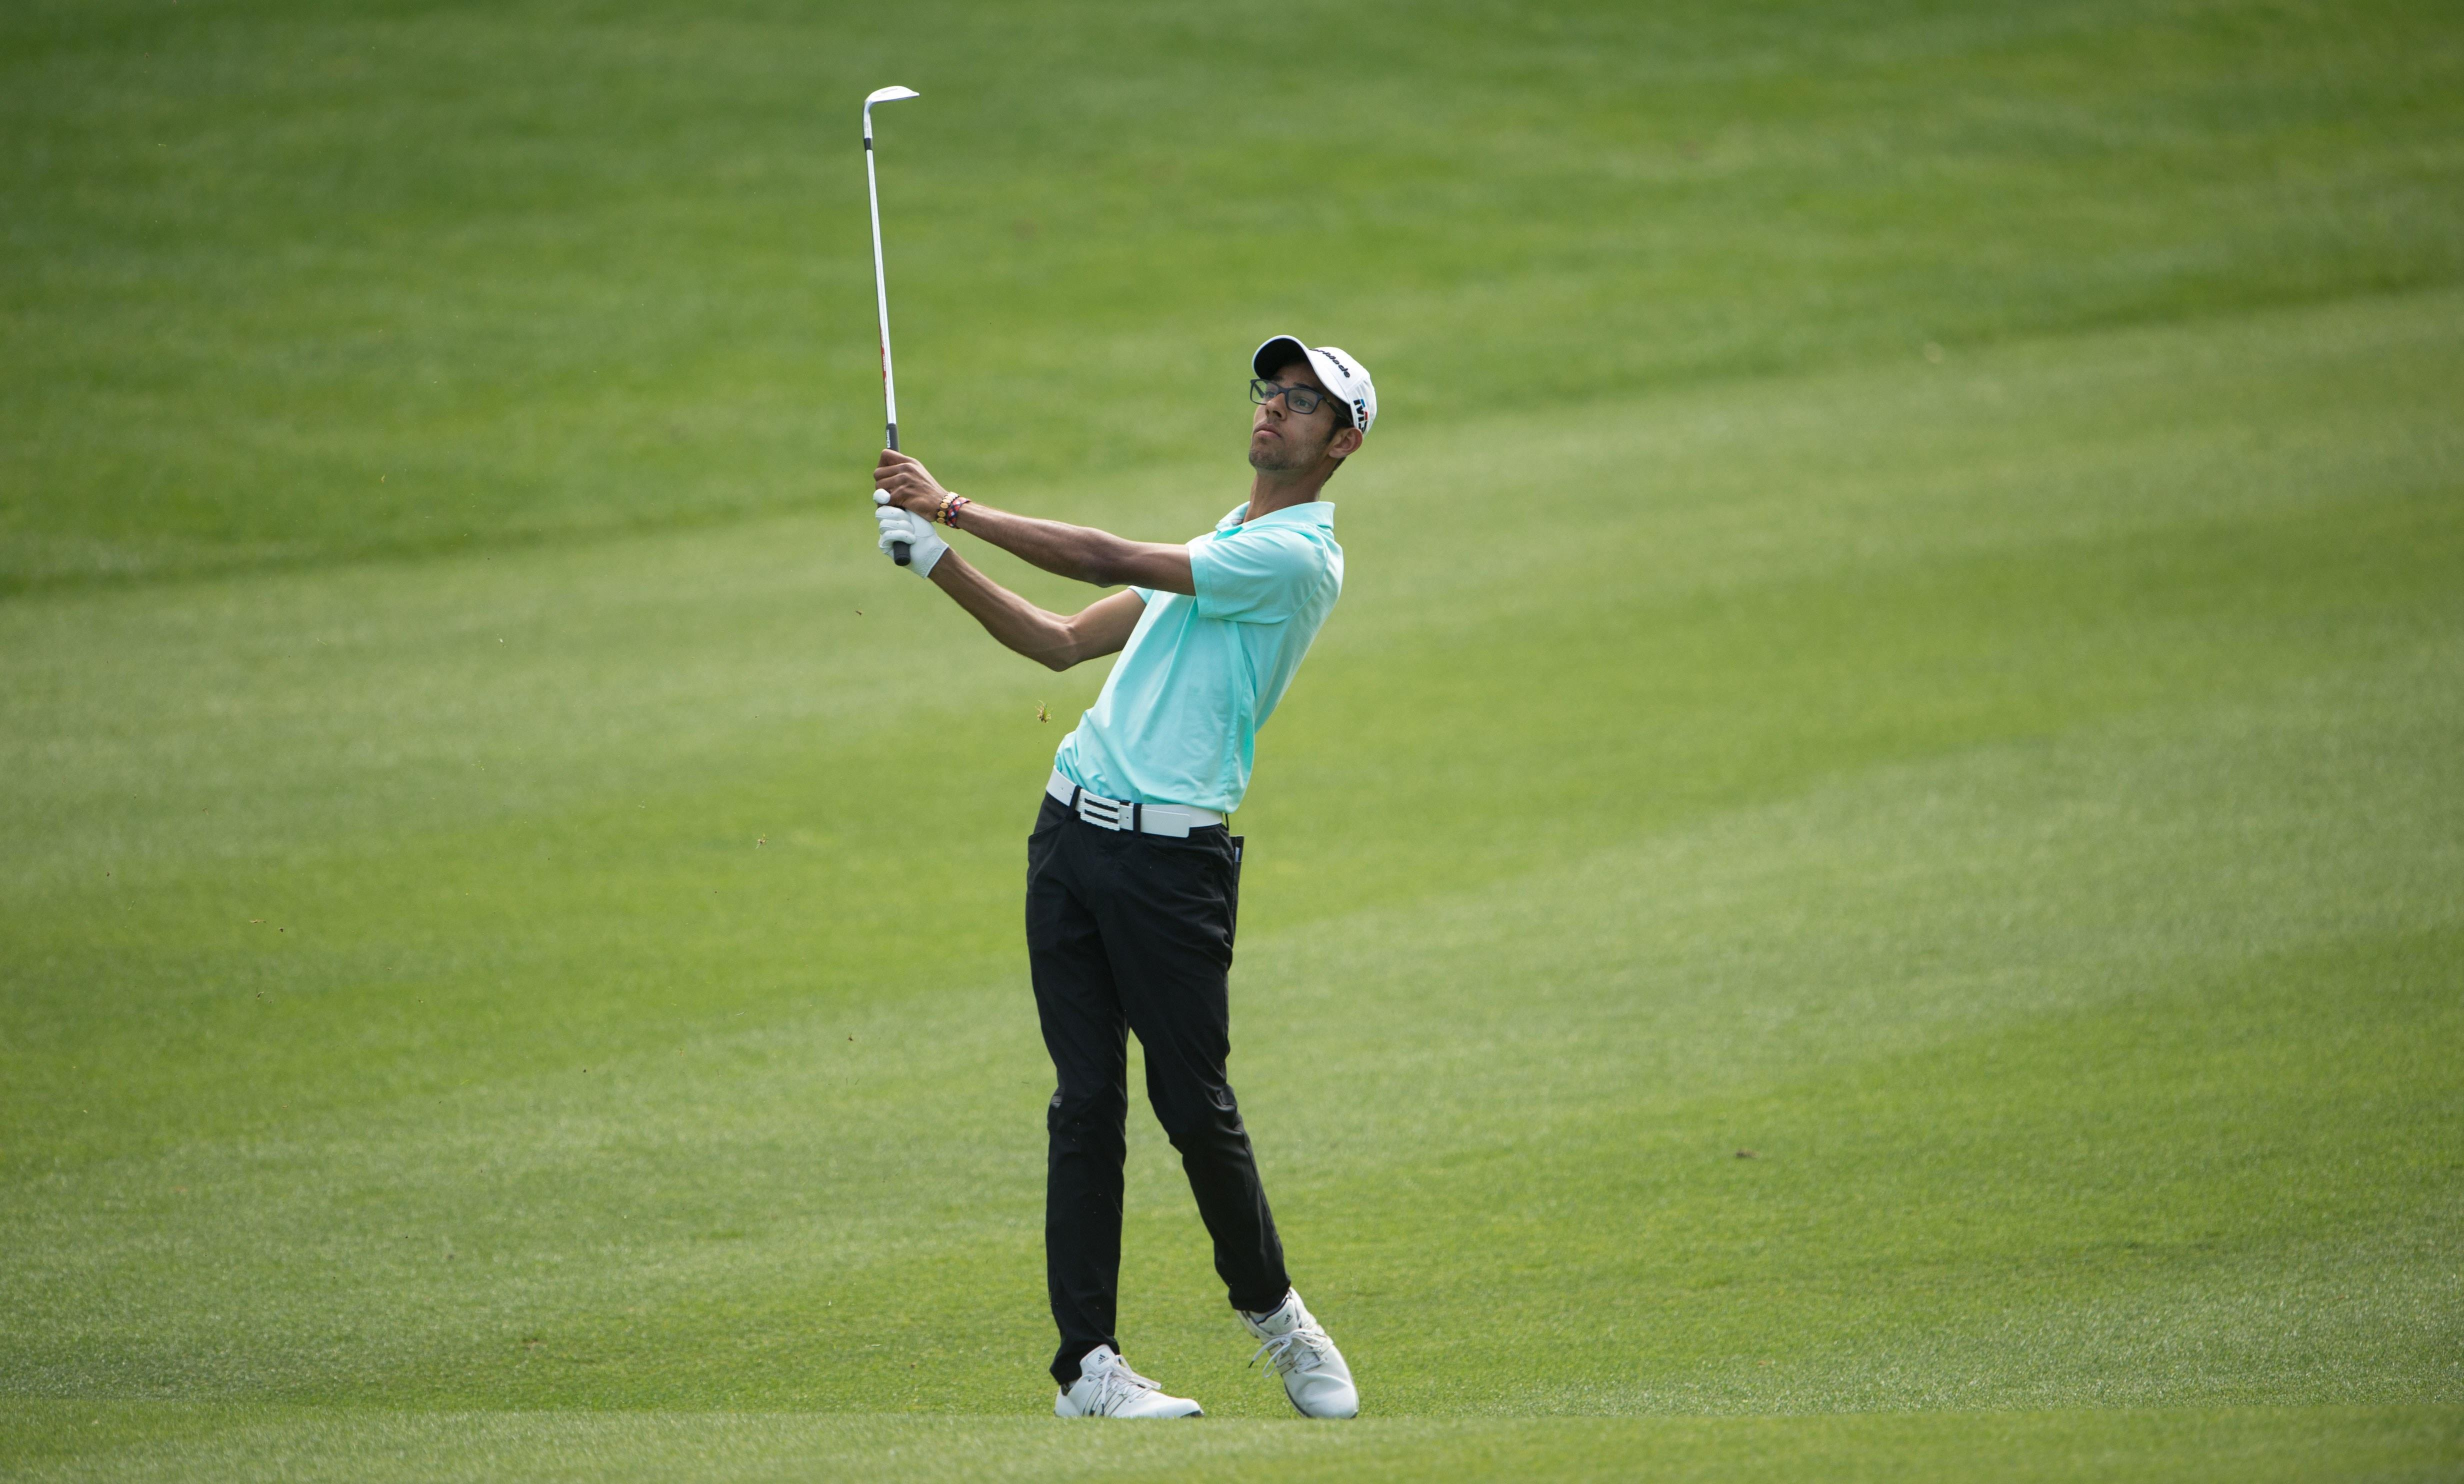 Rising junior gets penalty for rangefinder mishap, hangs on to win prestigious title